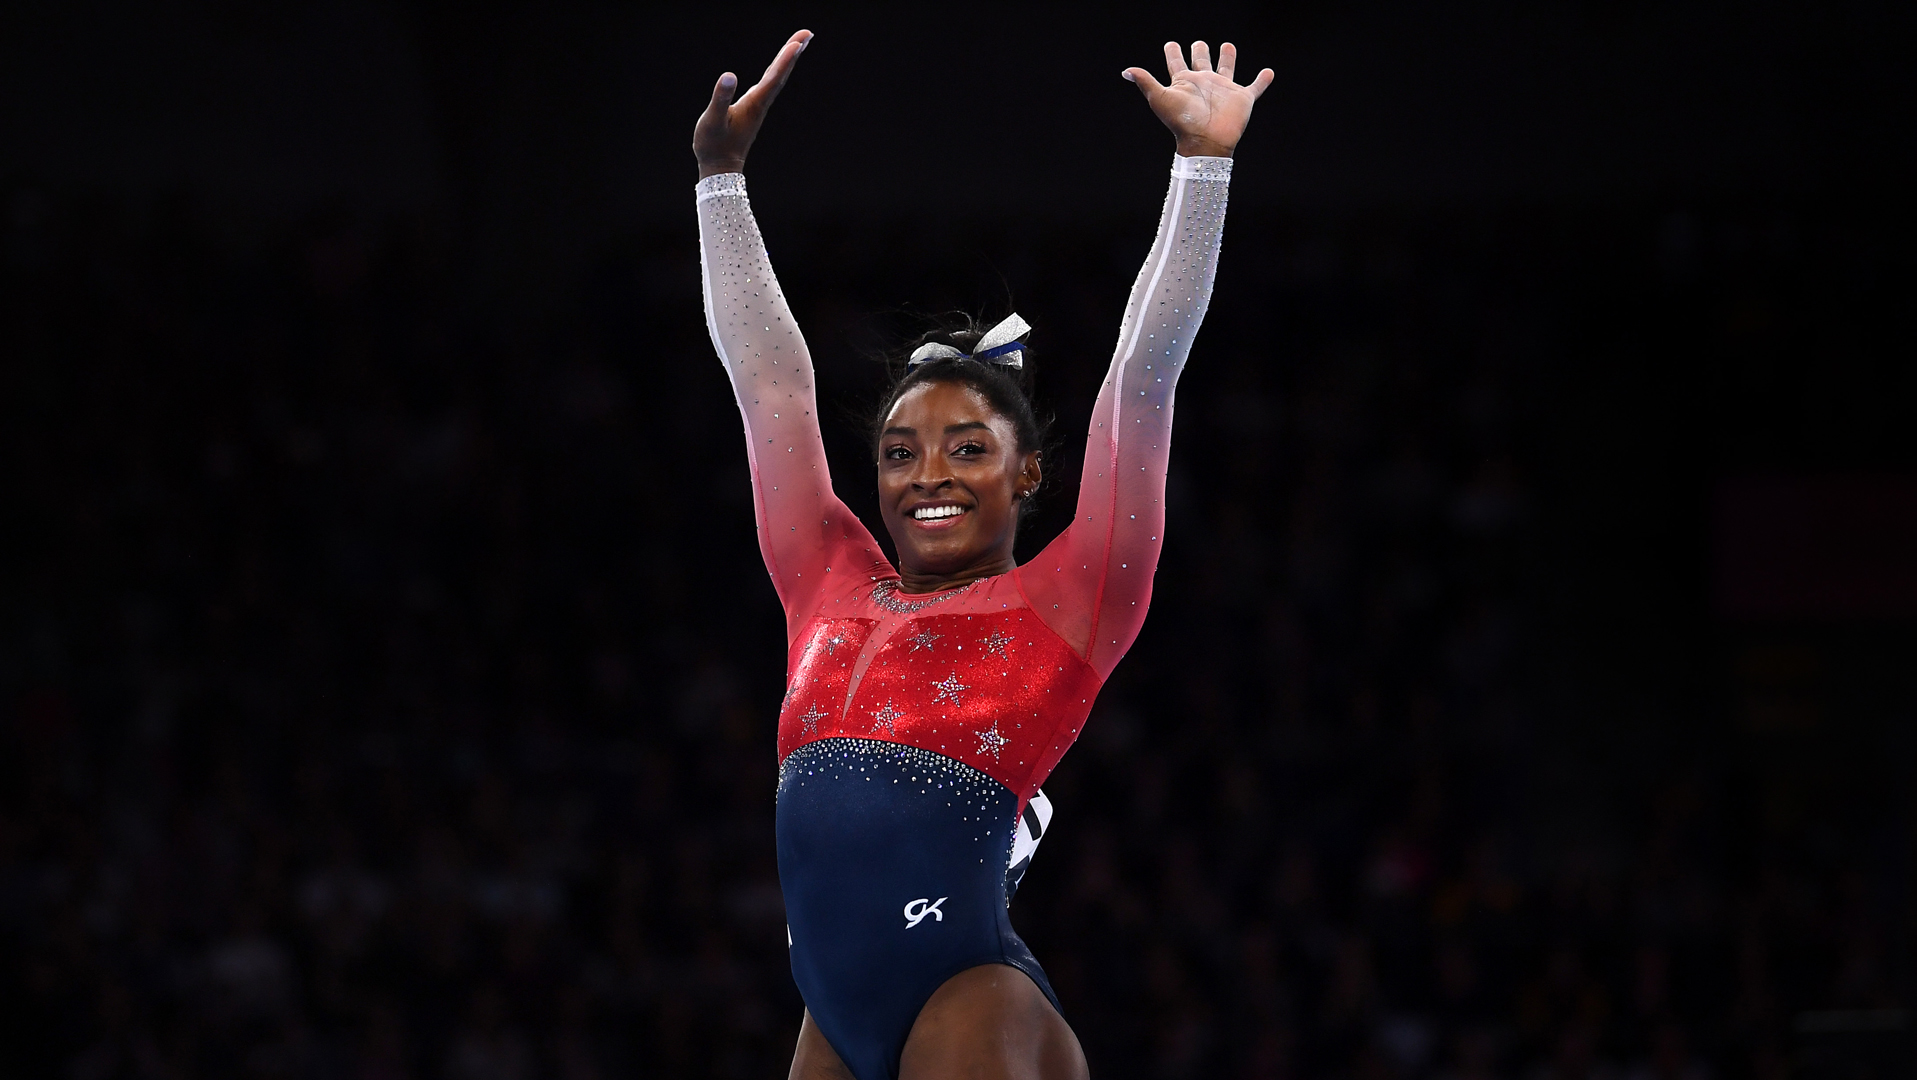 Simone Biles waves to the crowd after finishing her floor routine during the Women's Team Finals on Day 5 of FIG Artistic Gymnastics World Championships on October 08, 2019 in Stuttgart, Germany. (Credit: Laurence Griffiths/Getty Images)